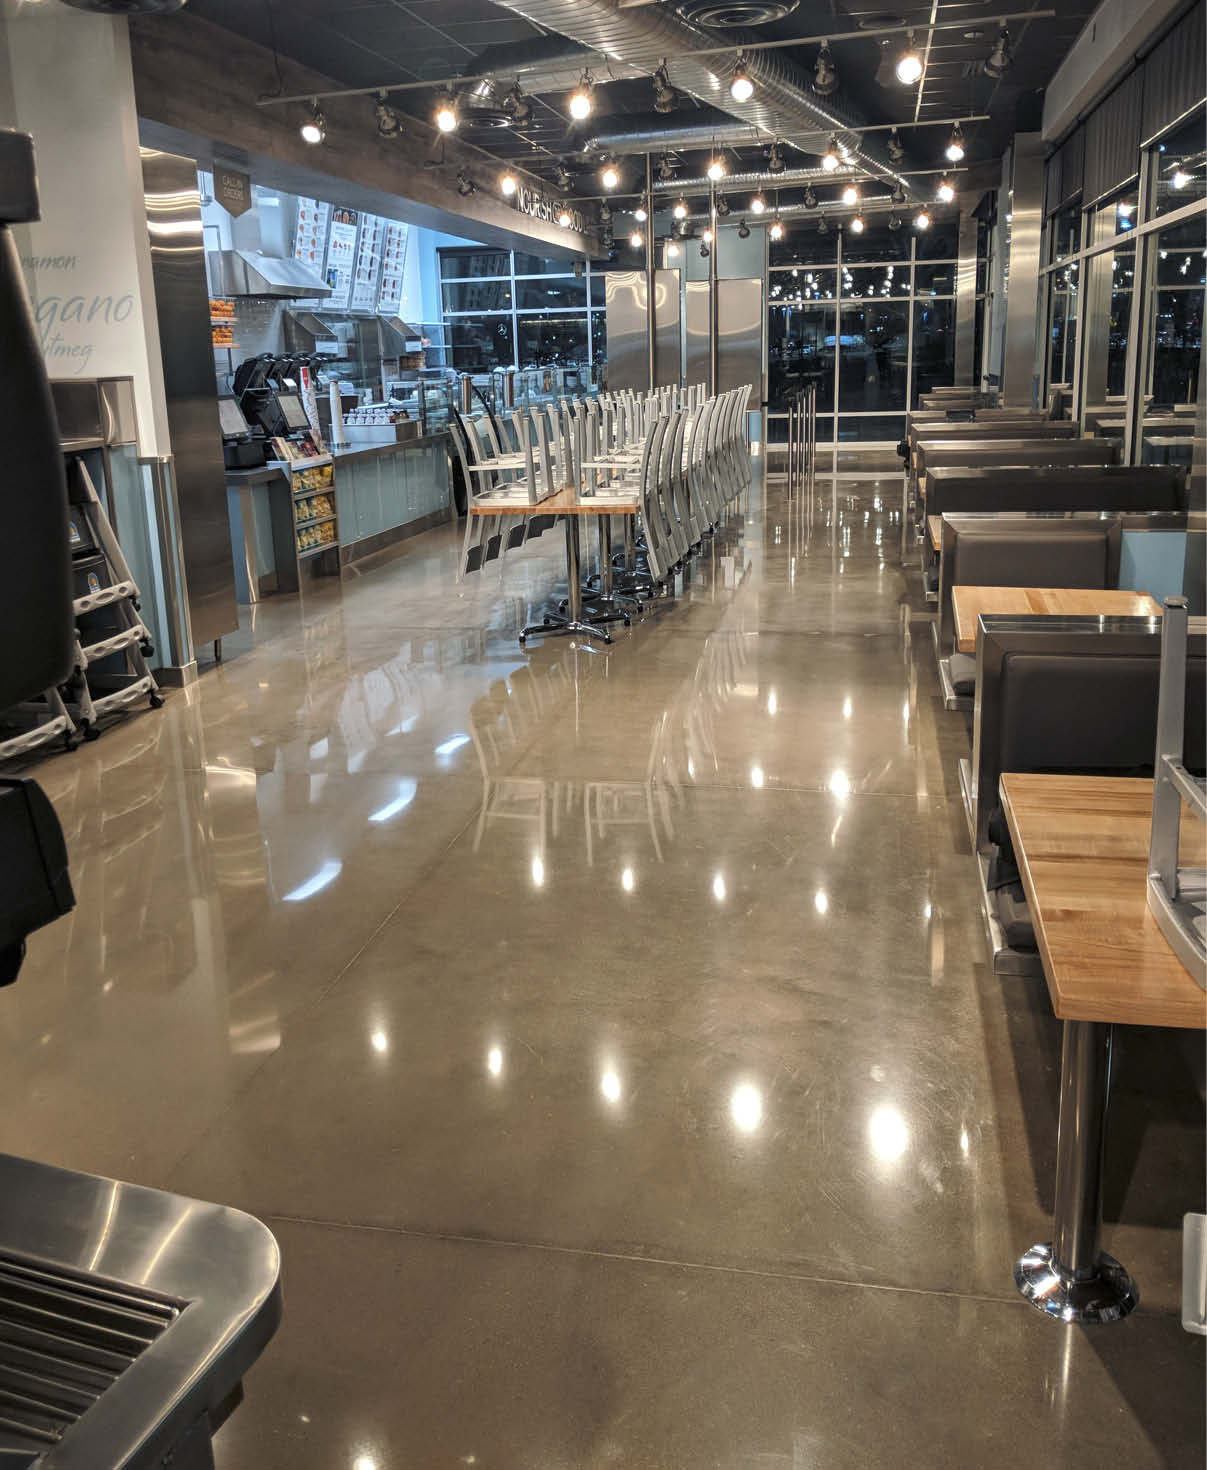 Cafe Zupa with polished concrete floors - set up polished concrete maintenance to ensure it looking good for the long term